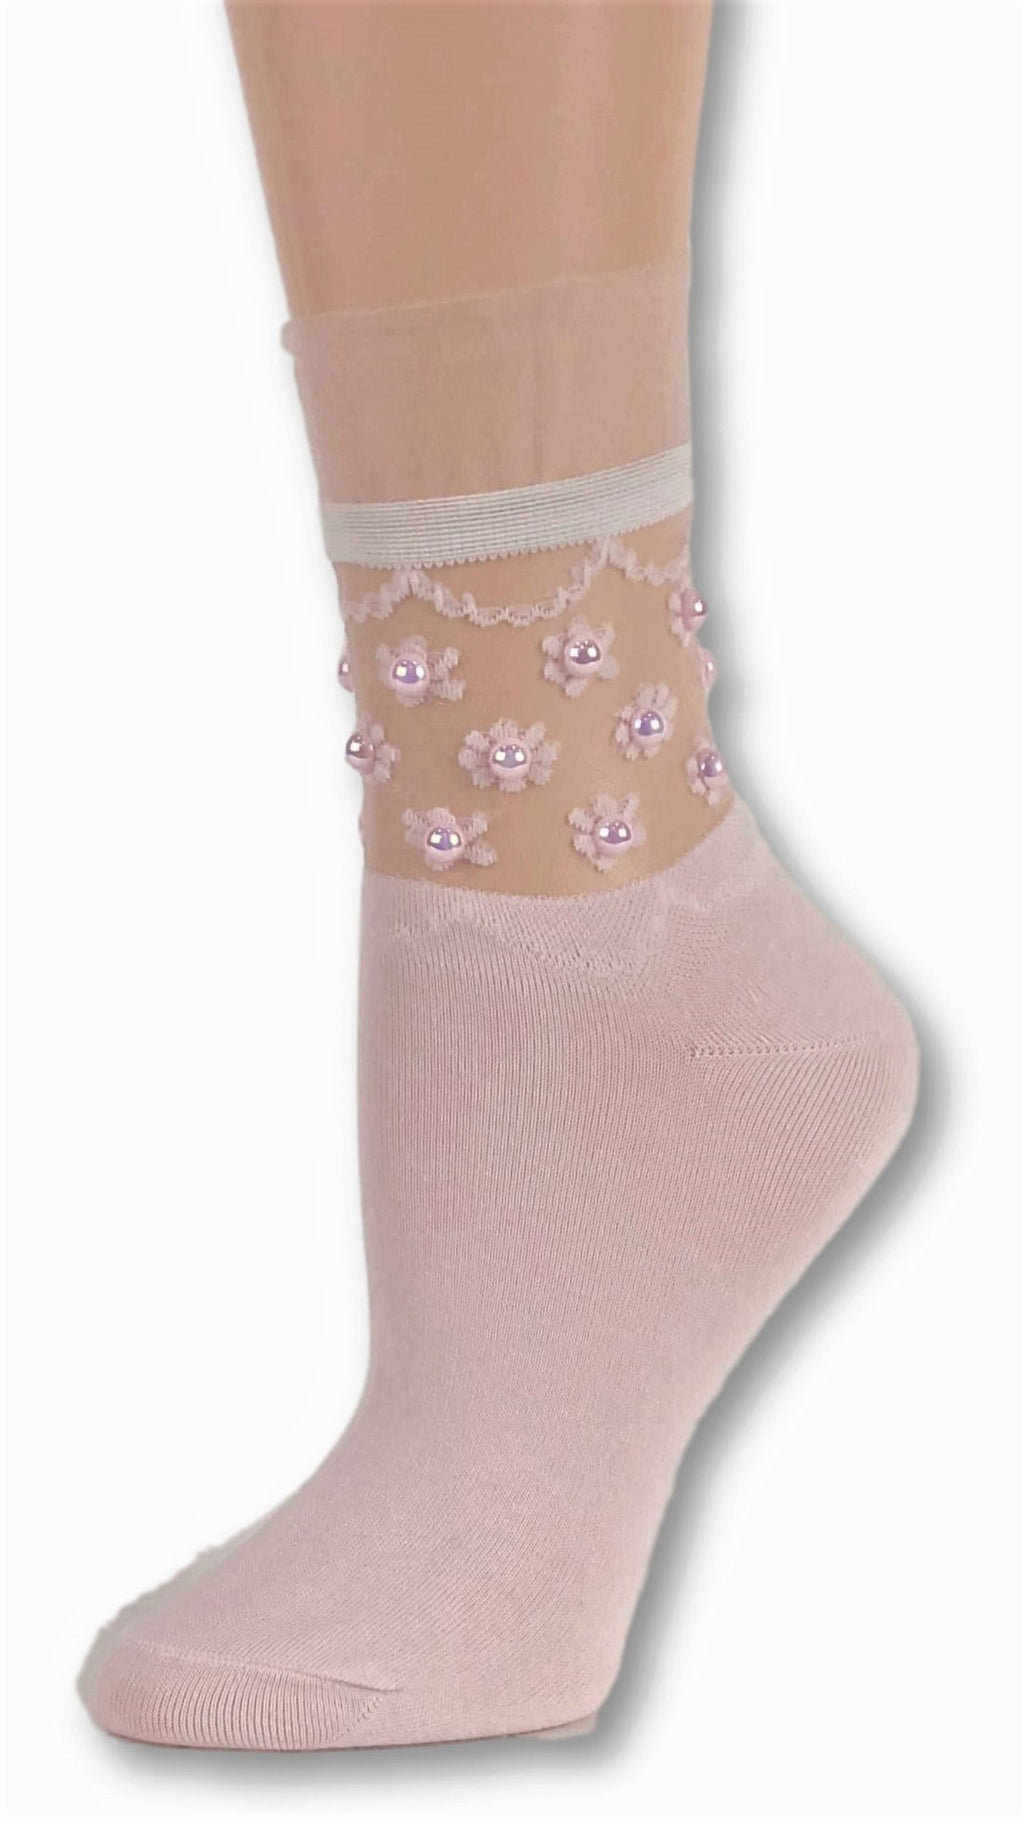 Tiny Pink Flowers custom Sheer Socks with beads